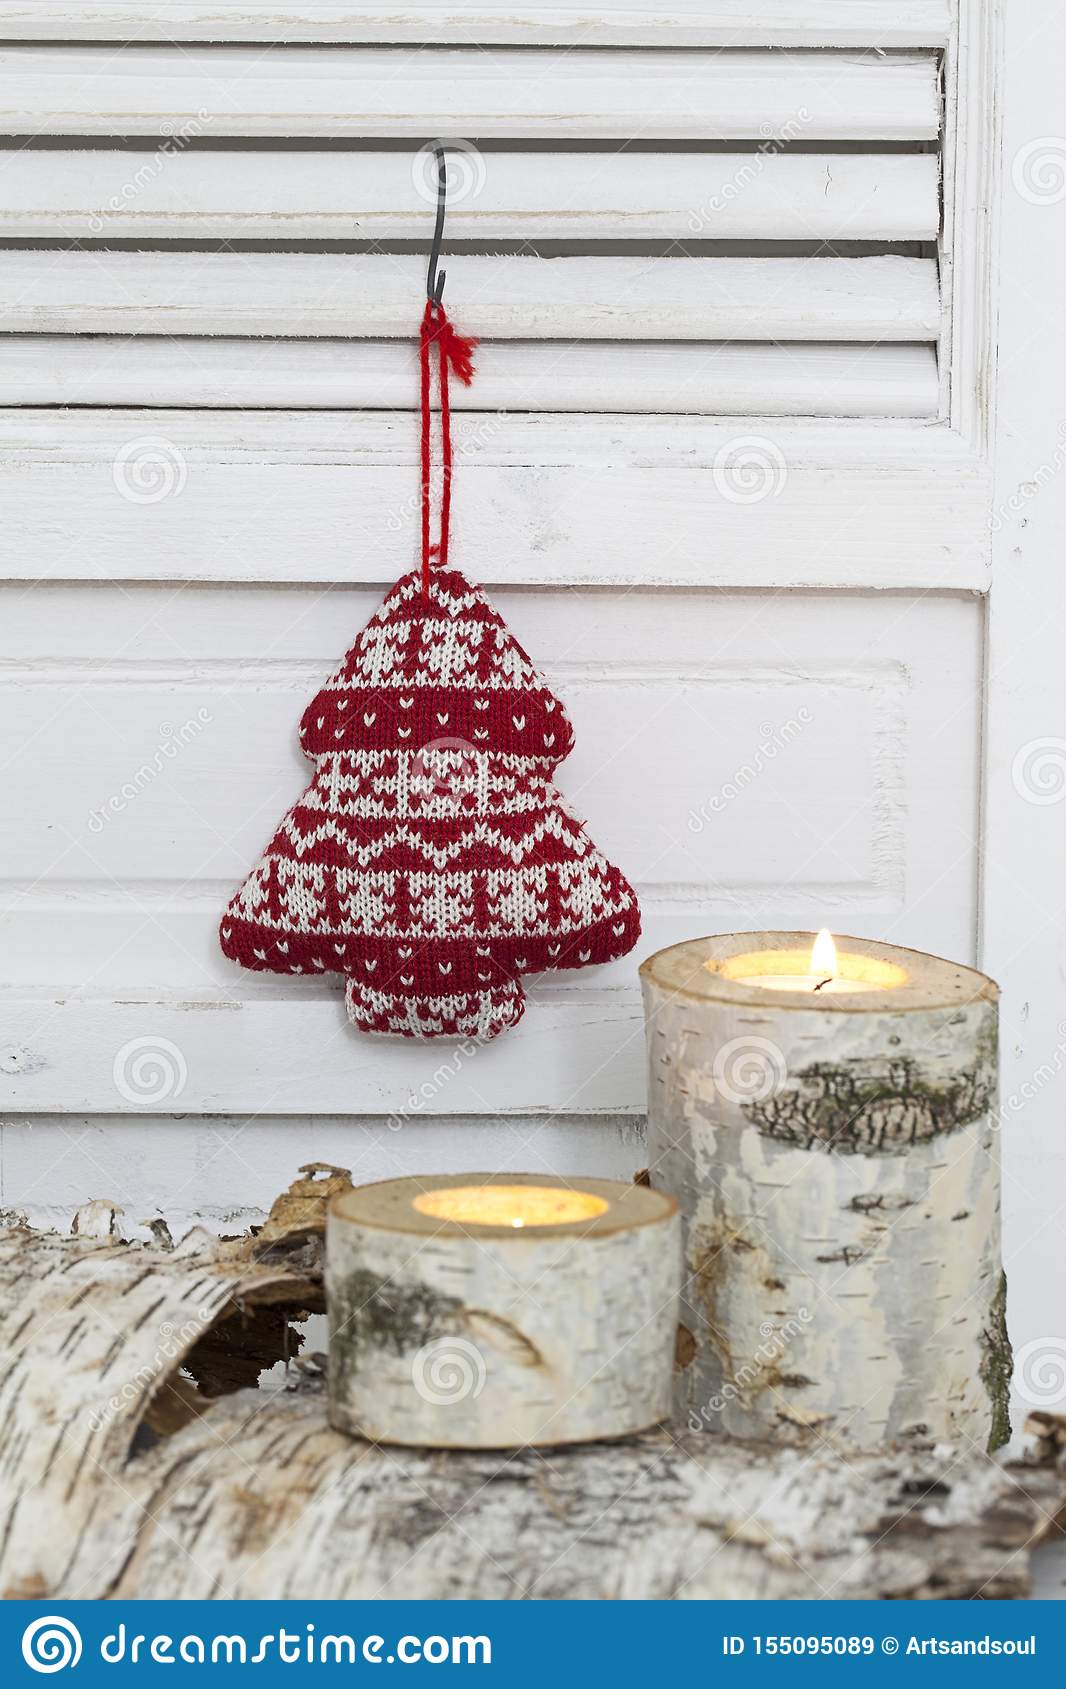 Rustic Christmas Decoration With Knitted Tree And Candles Stock Image Image Of White Ornament 155095089